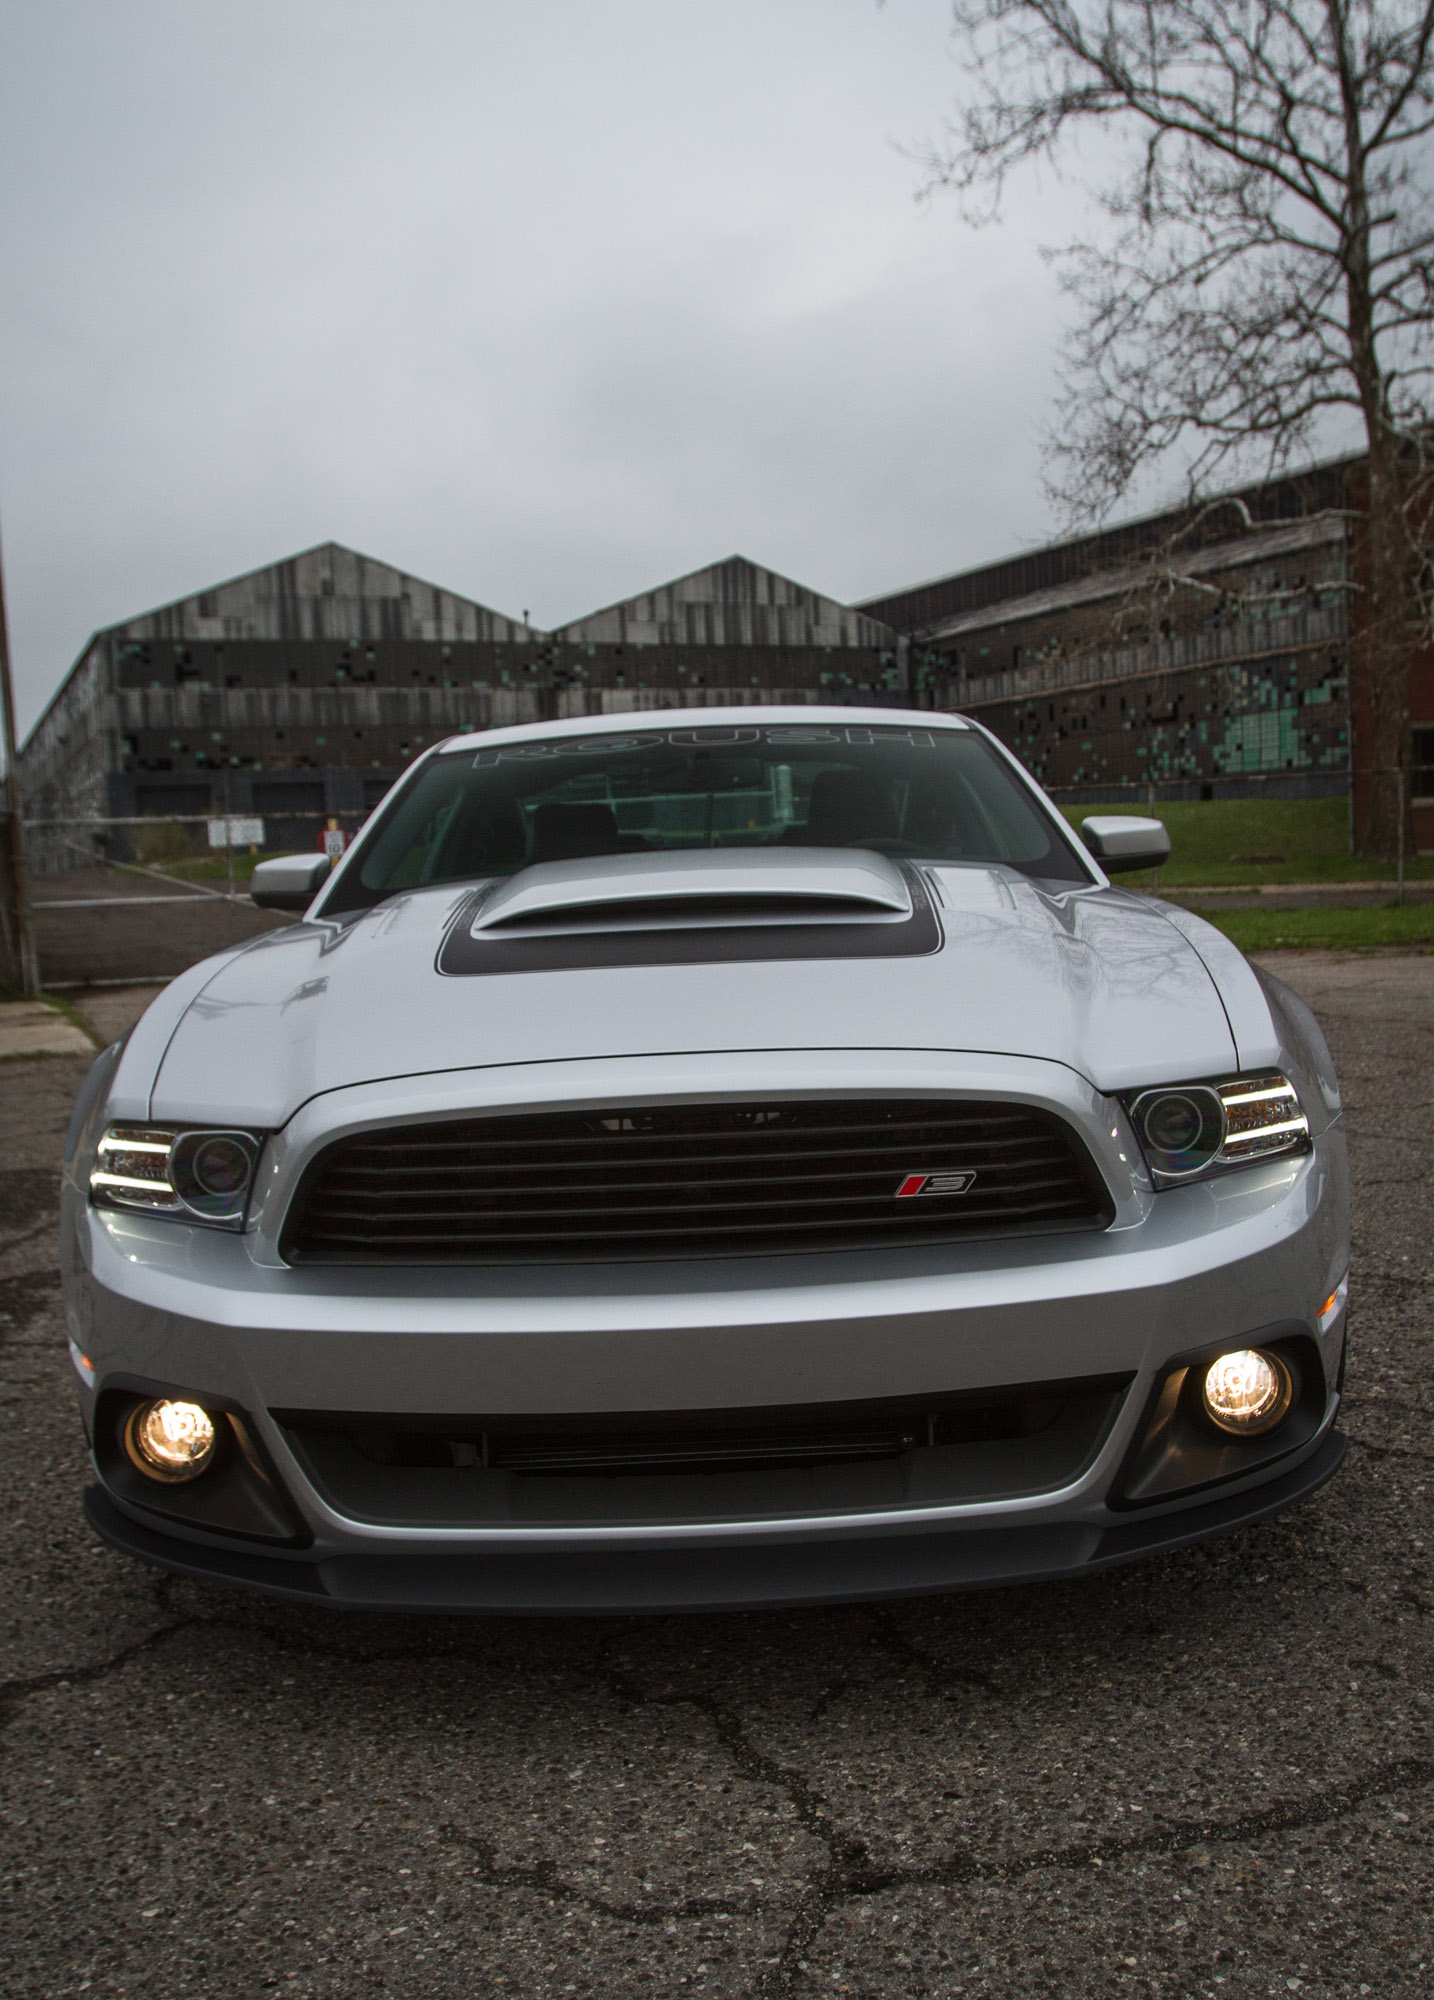 ROUSH Ford Mustang photo #1